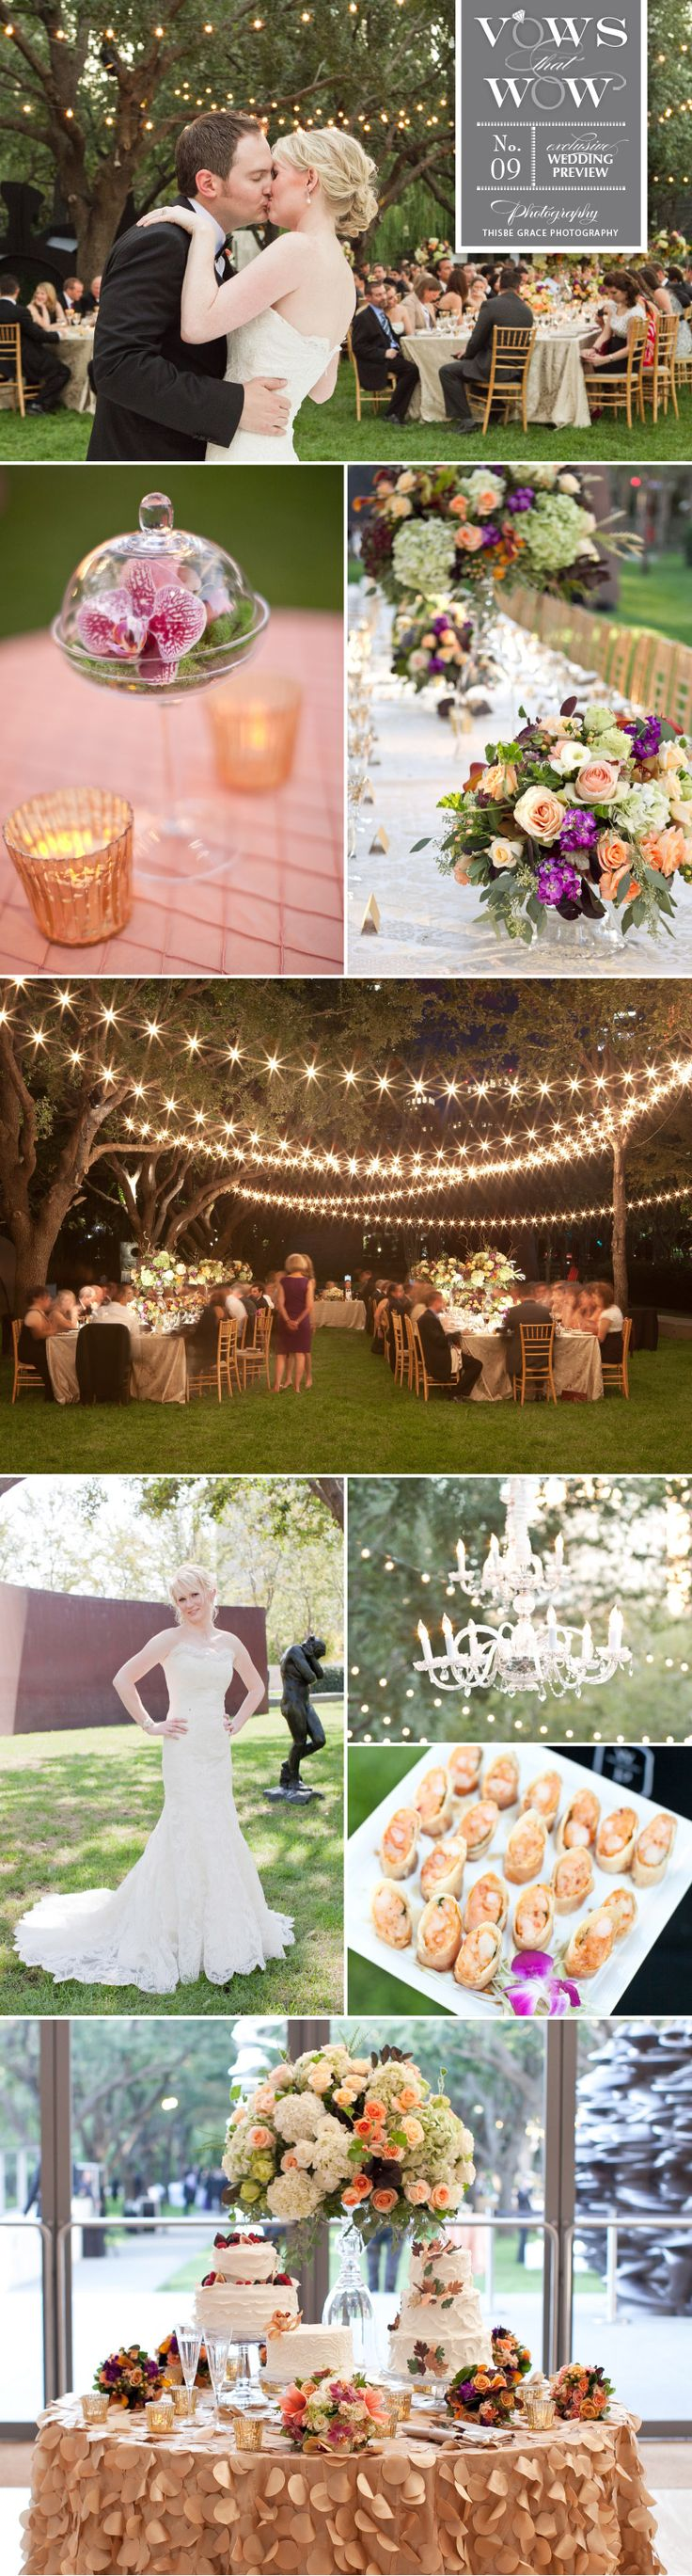 Fabulous outdoor fall wedding coordinated by Jordan Payne Events! Gorgeous outdoor lighting from Beyond!  Photos by Thisbe Grace Photography  #fall #wedding #outdoor #chandeliers #lighting: Colors Pallets, Hanging Lights, Fabulous Outdoor, Outdoor Chandeliers, Outdoor Fall, Gorgeous Outdoor, Fall Weddings, Grace Photography, Outdoor Lights